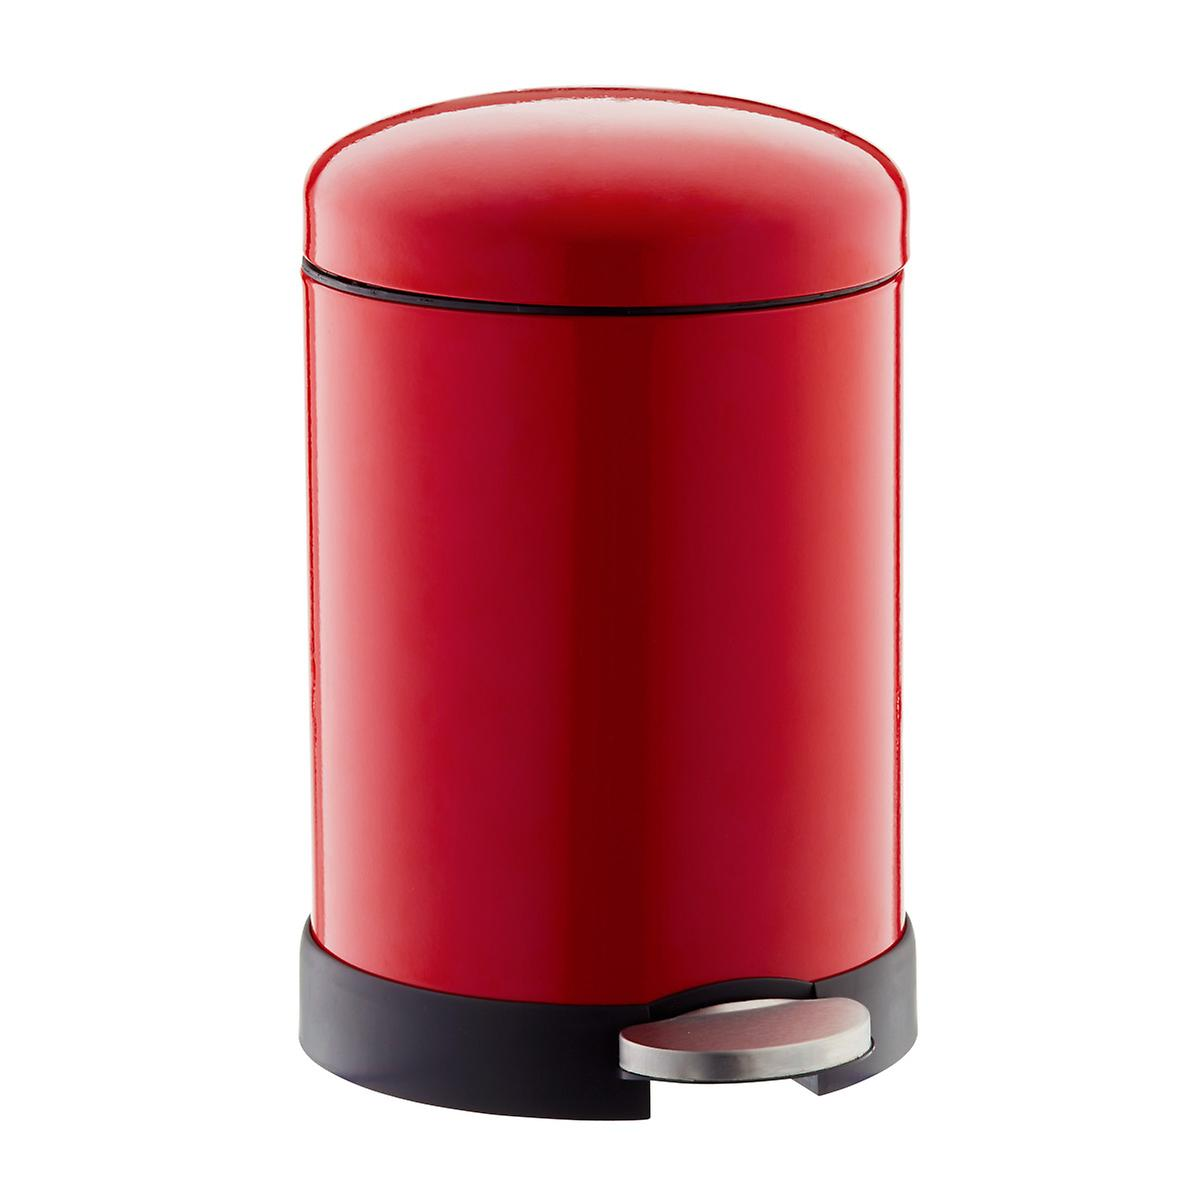 Red 1.3 gal. Glossy Round Retro Step Trash Can